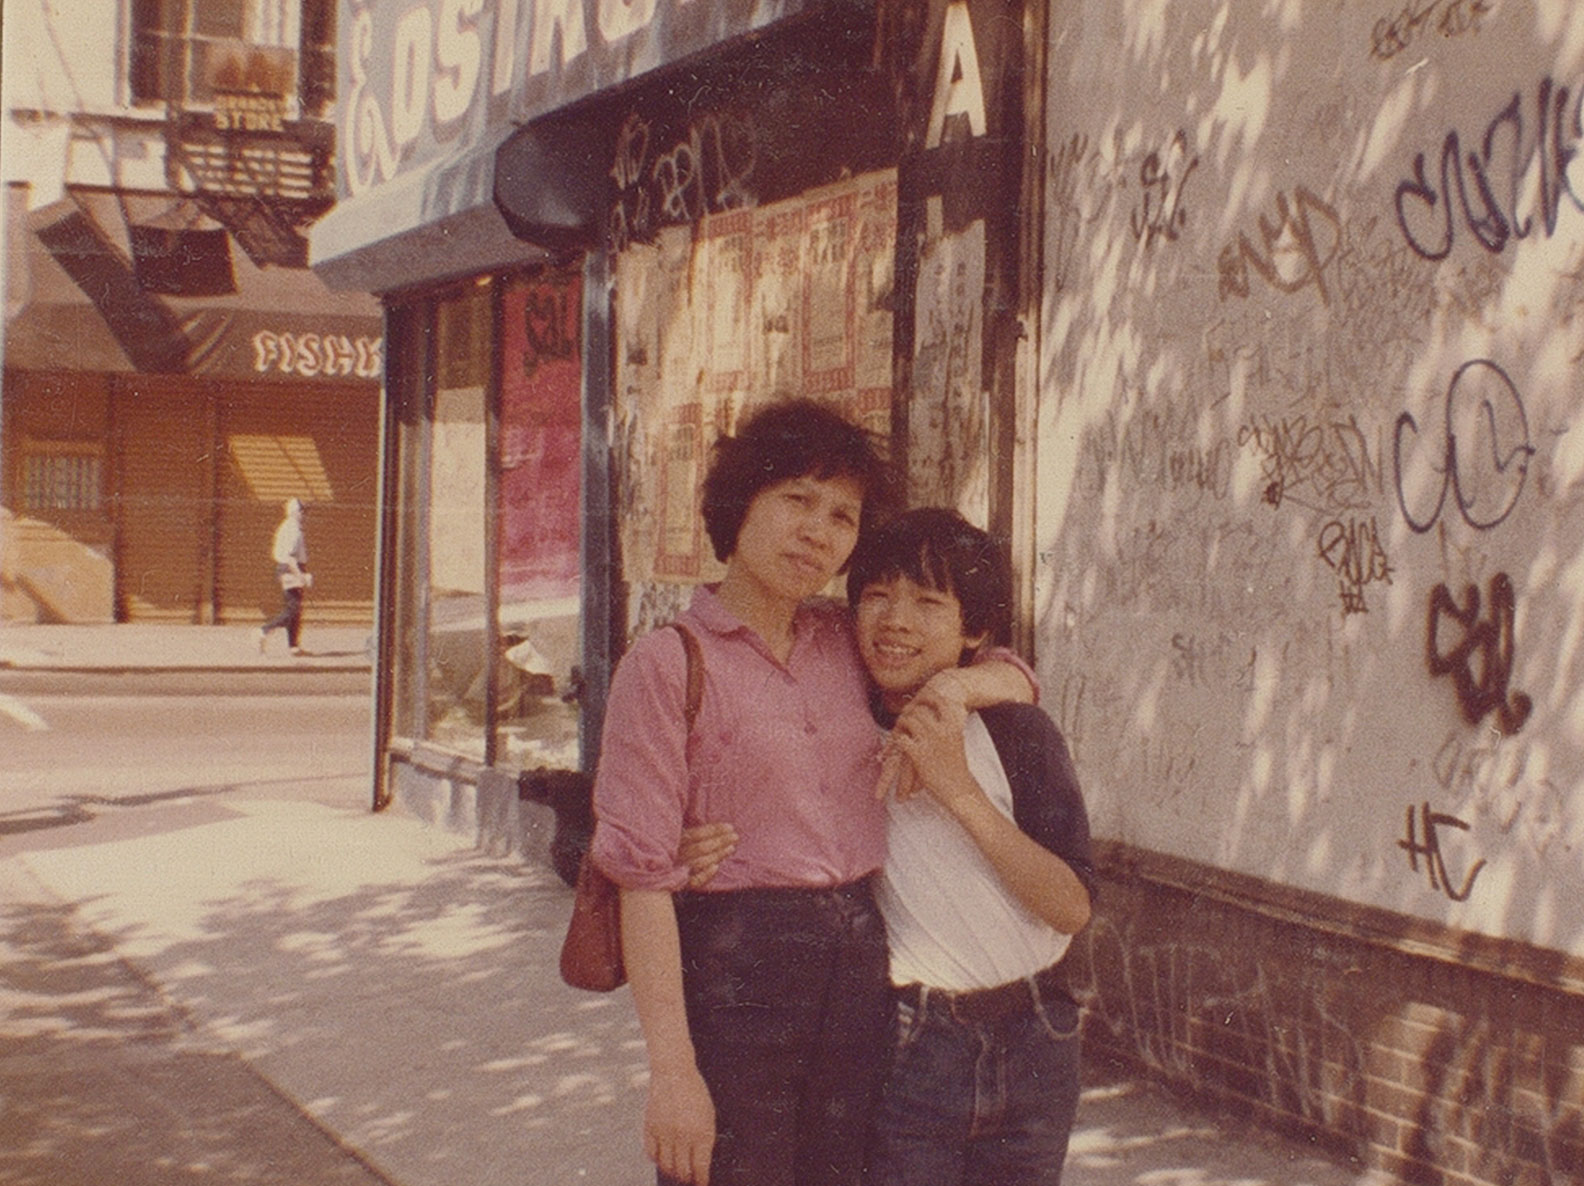 Photo portrait of Mrs. Wong and her son standing on the street in front of 103 Orchard Street